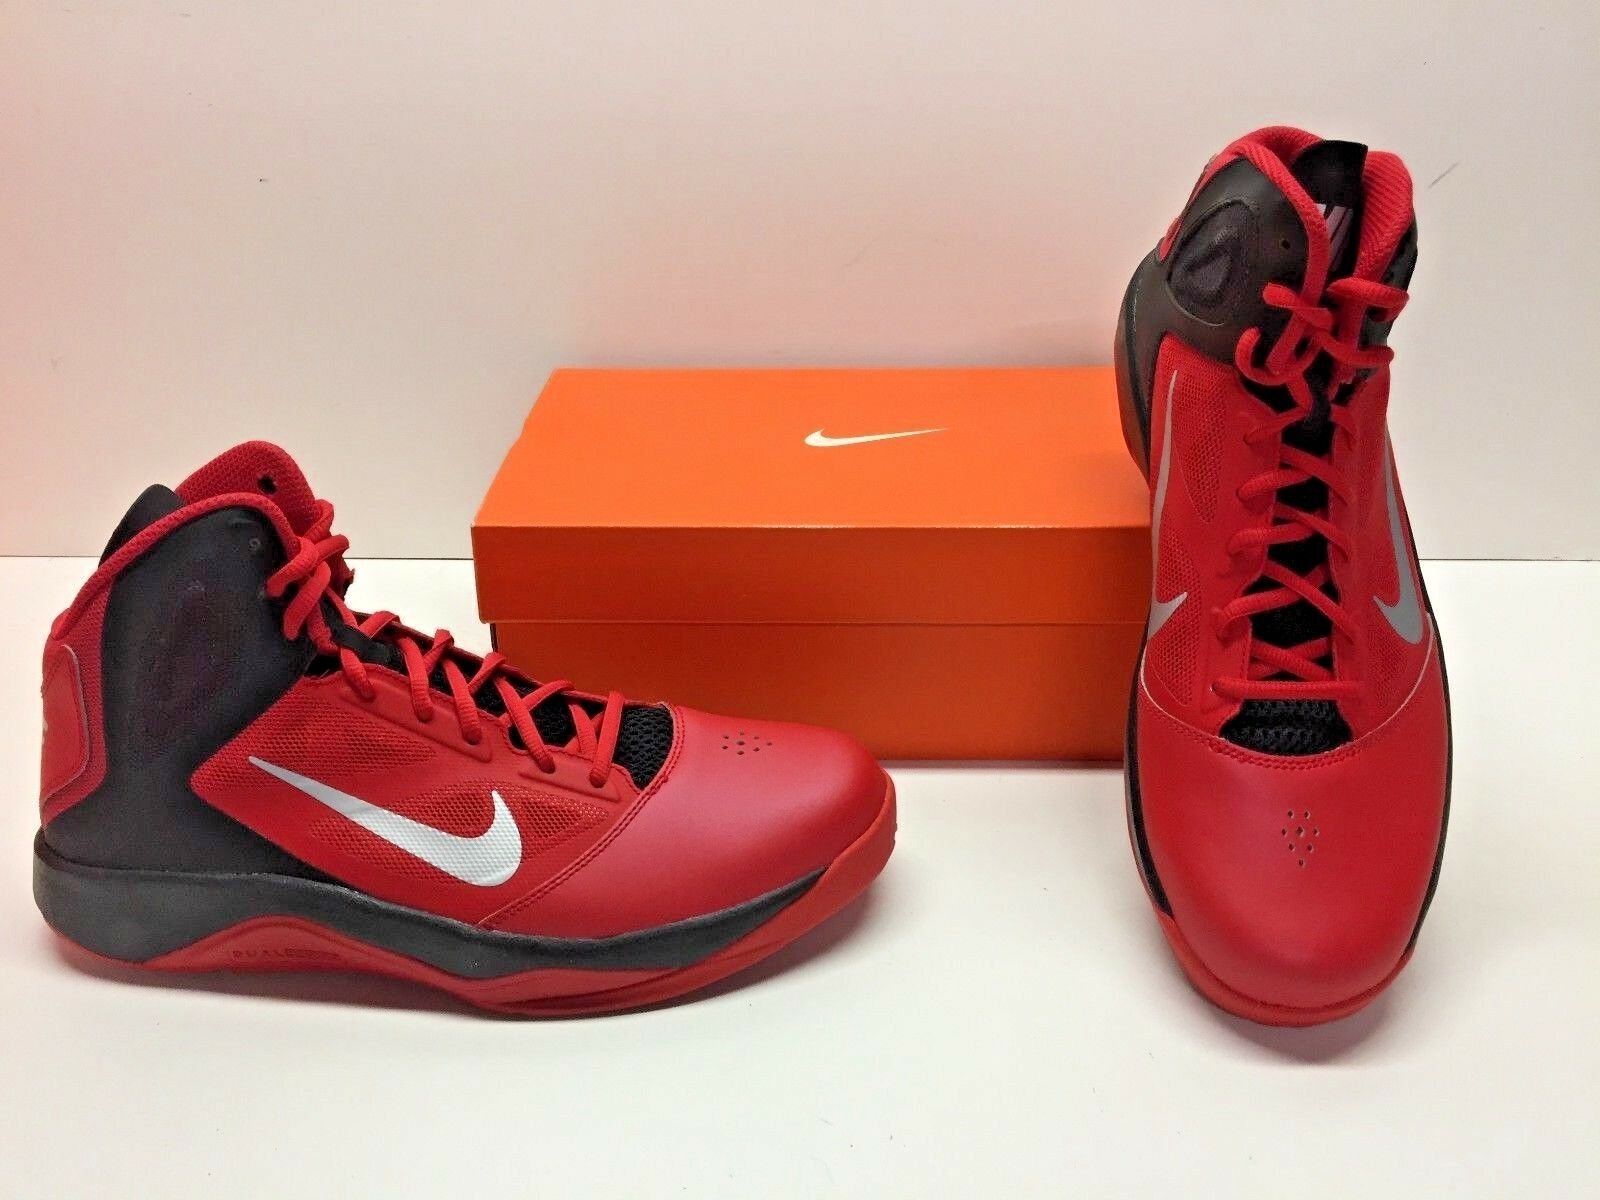 4417d69dcc11 Nike Dual Fusion BB II Basketball Basketball Basketball Red Black High Top Sneakers  Shoes Mens 10.5